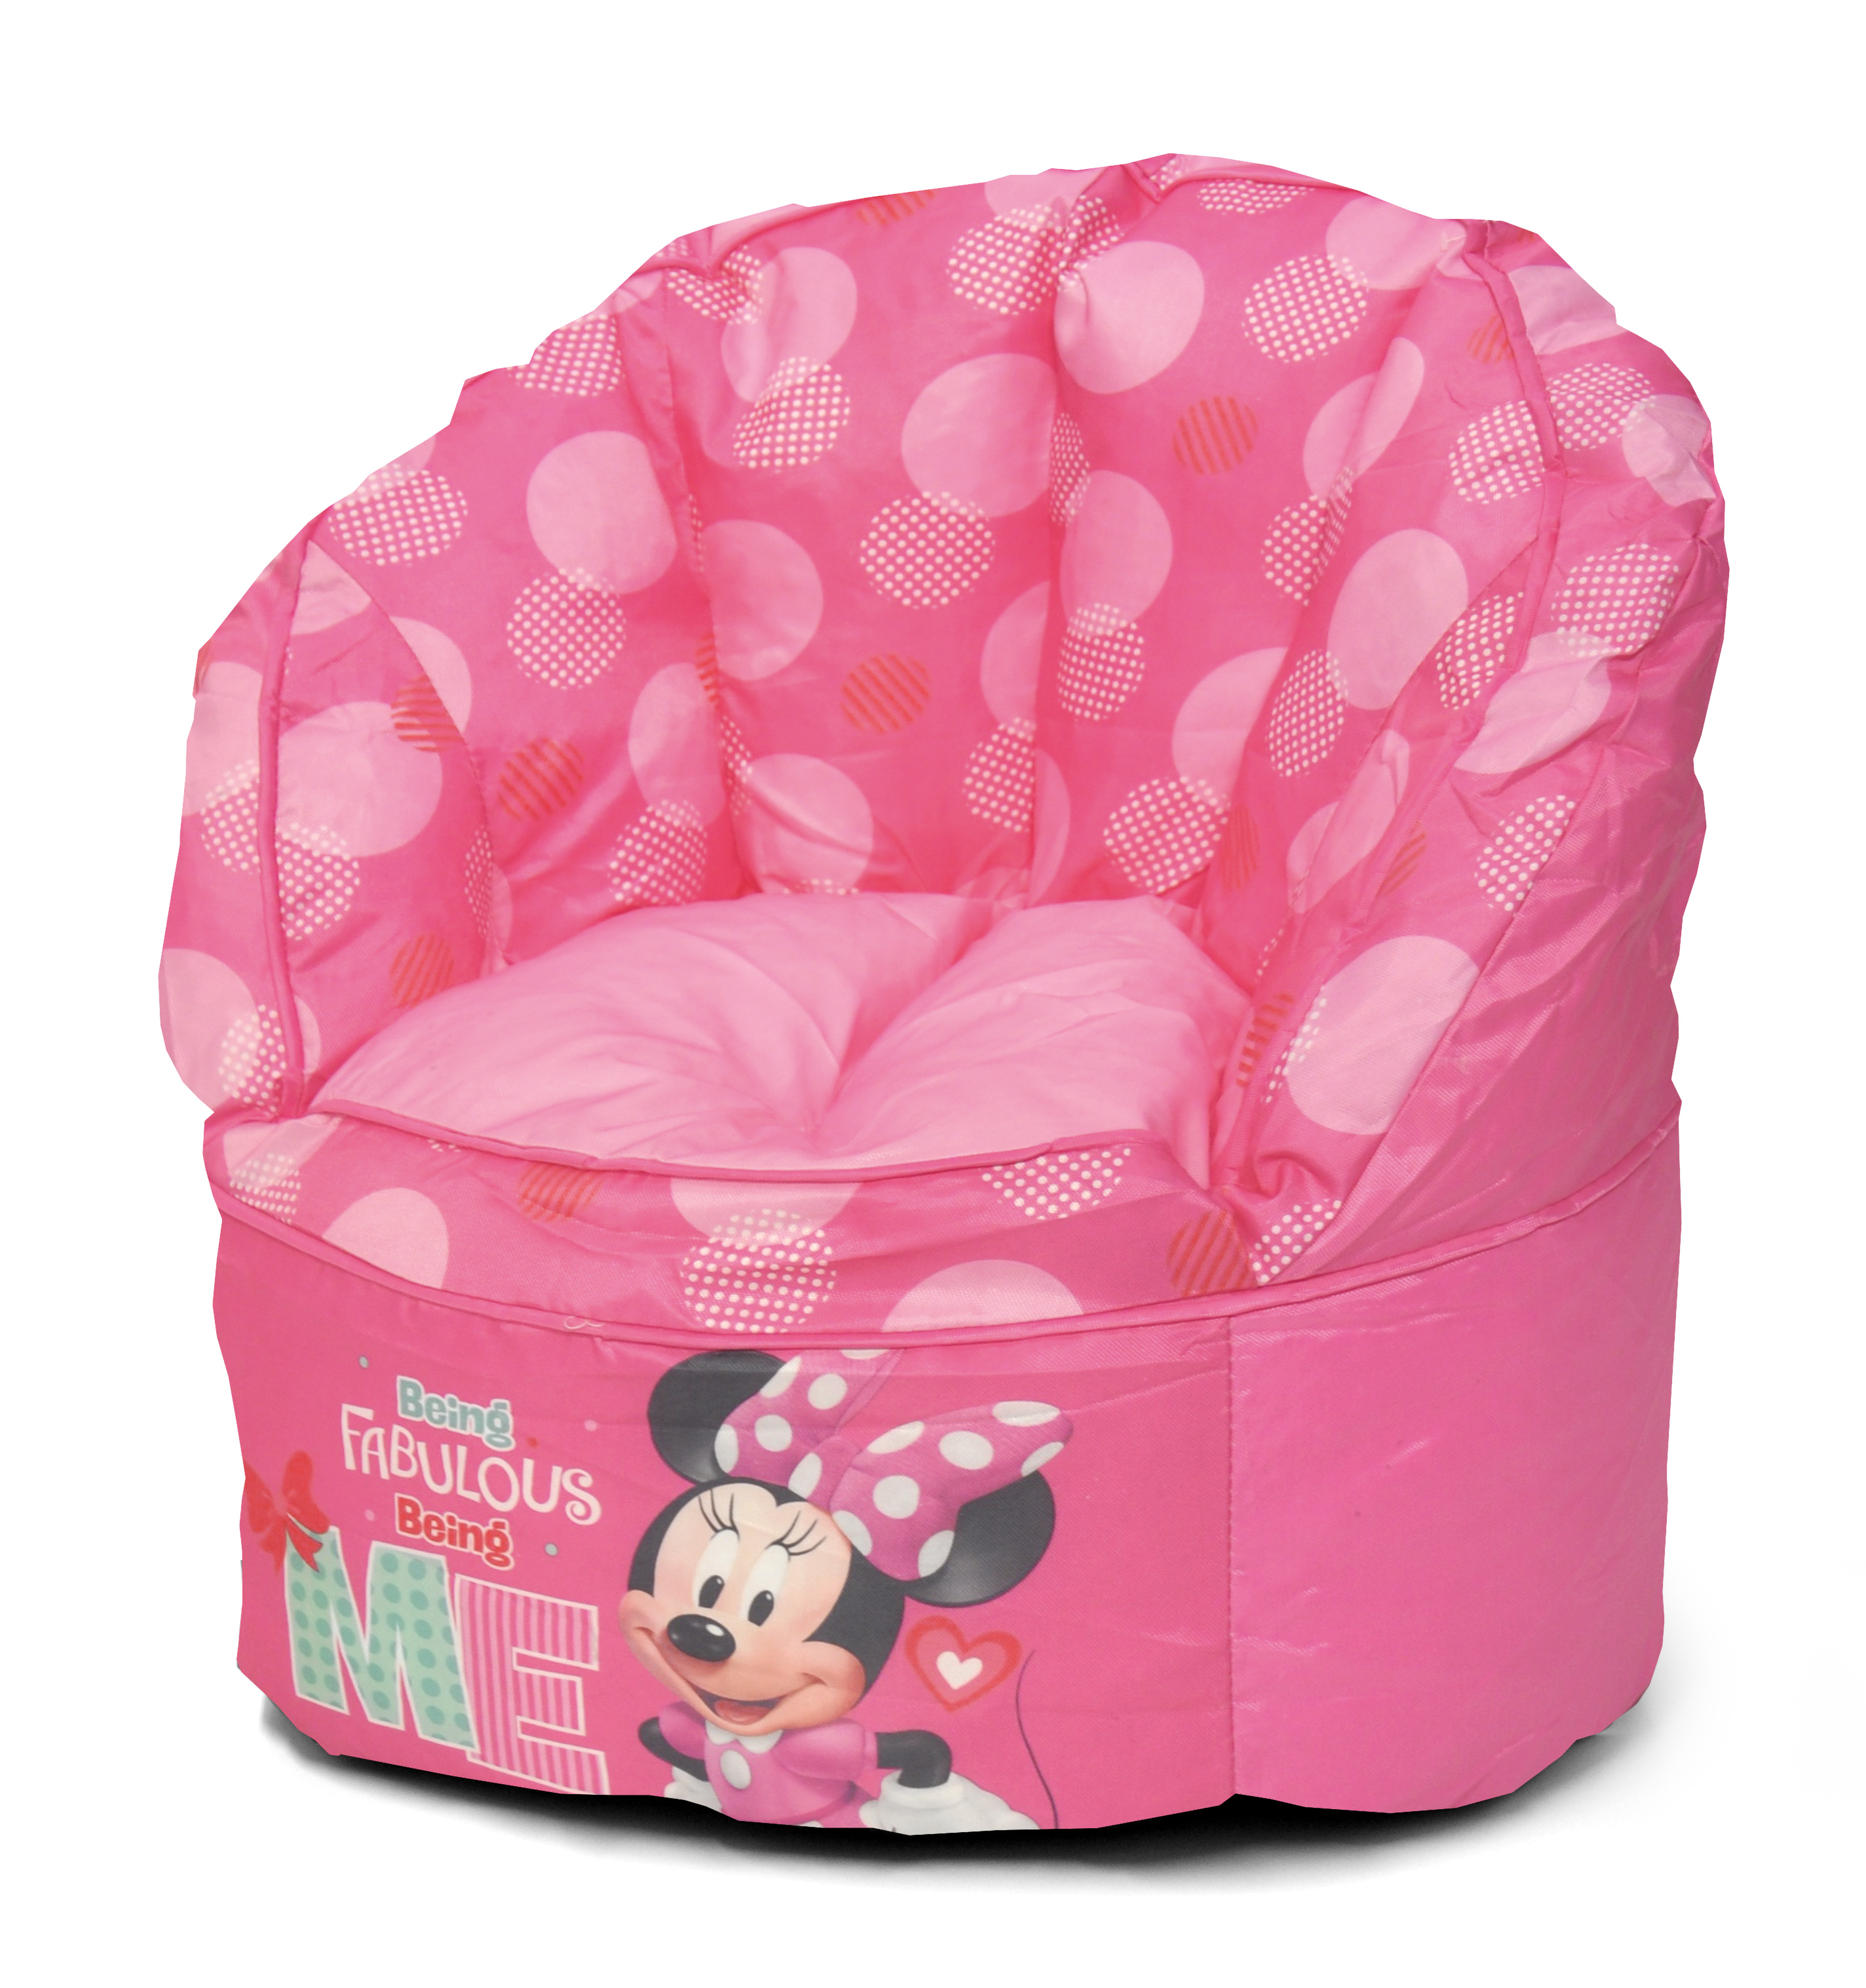 Disney Minnie Mouse Kids Bean Bag Chair